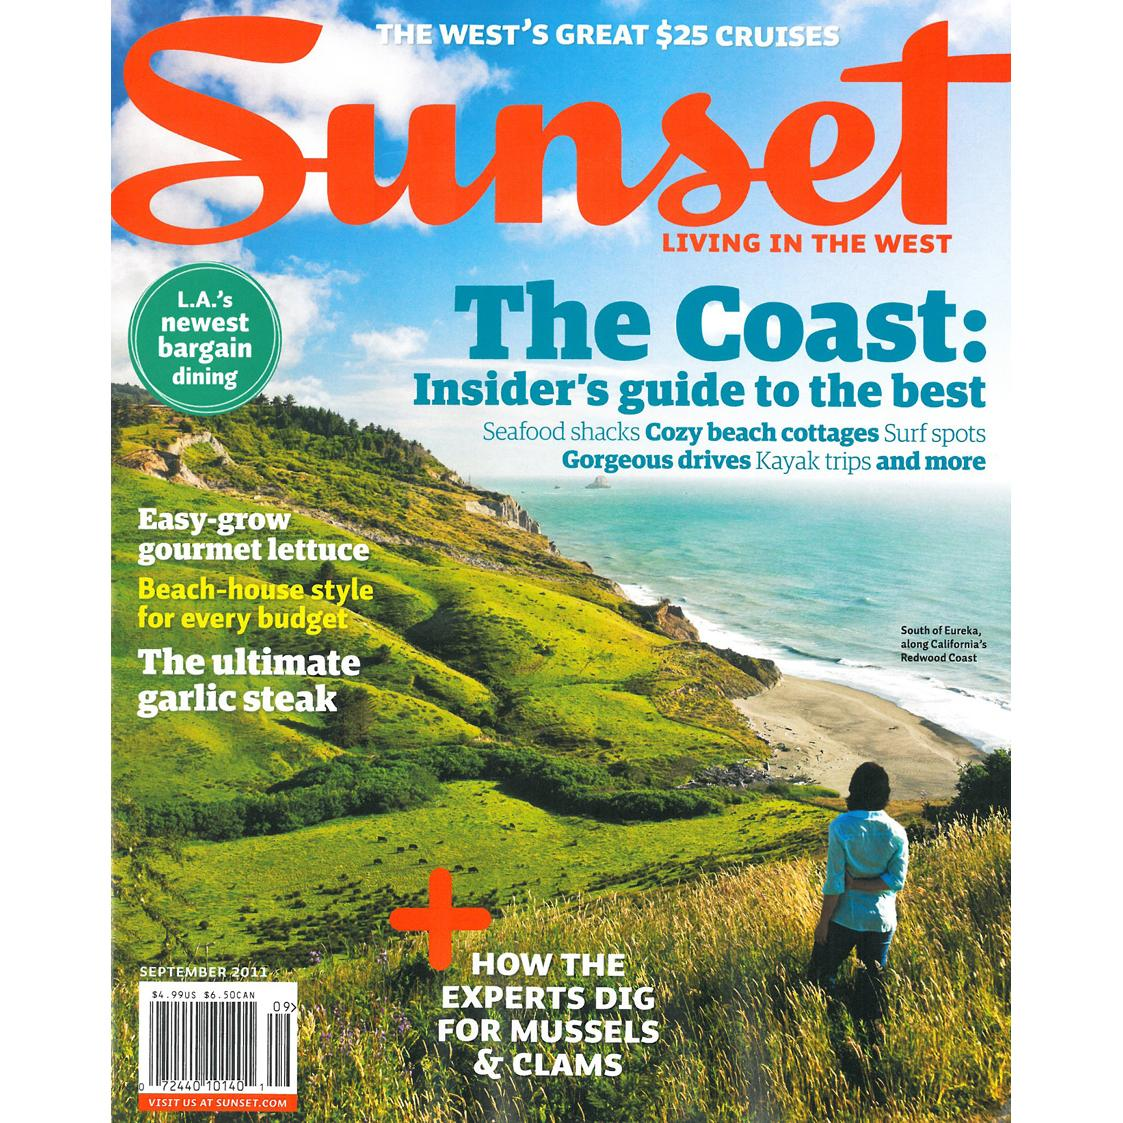 Travel Magazine Subscription For 4